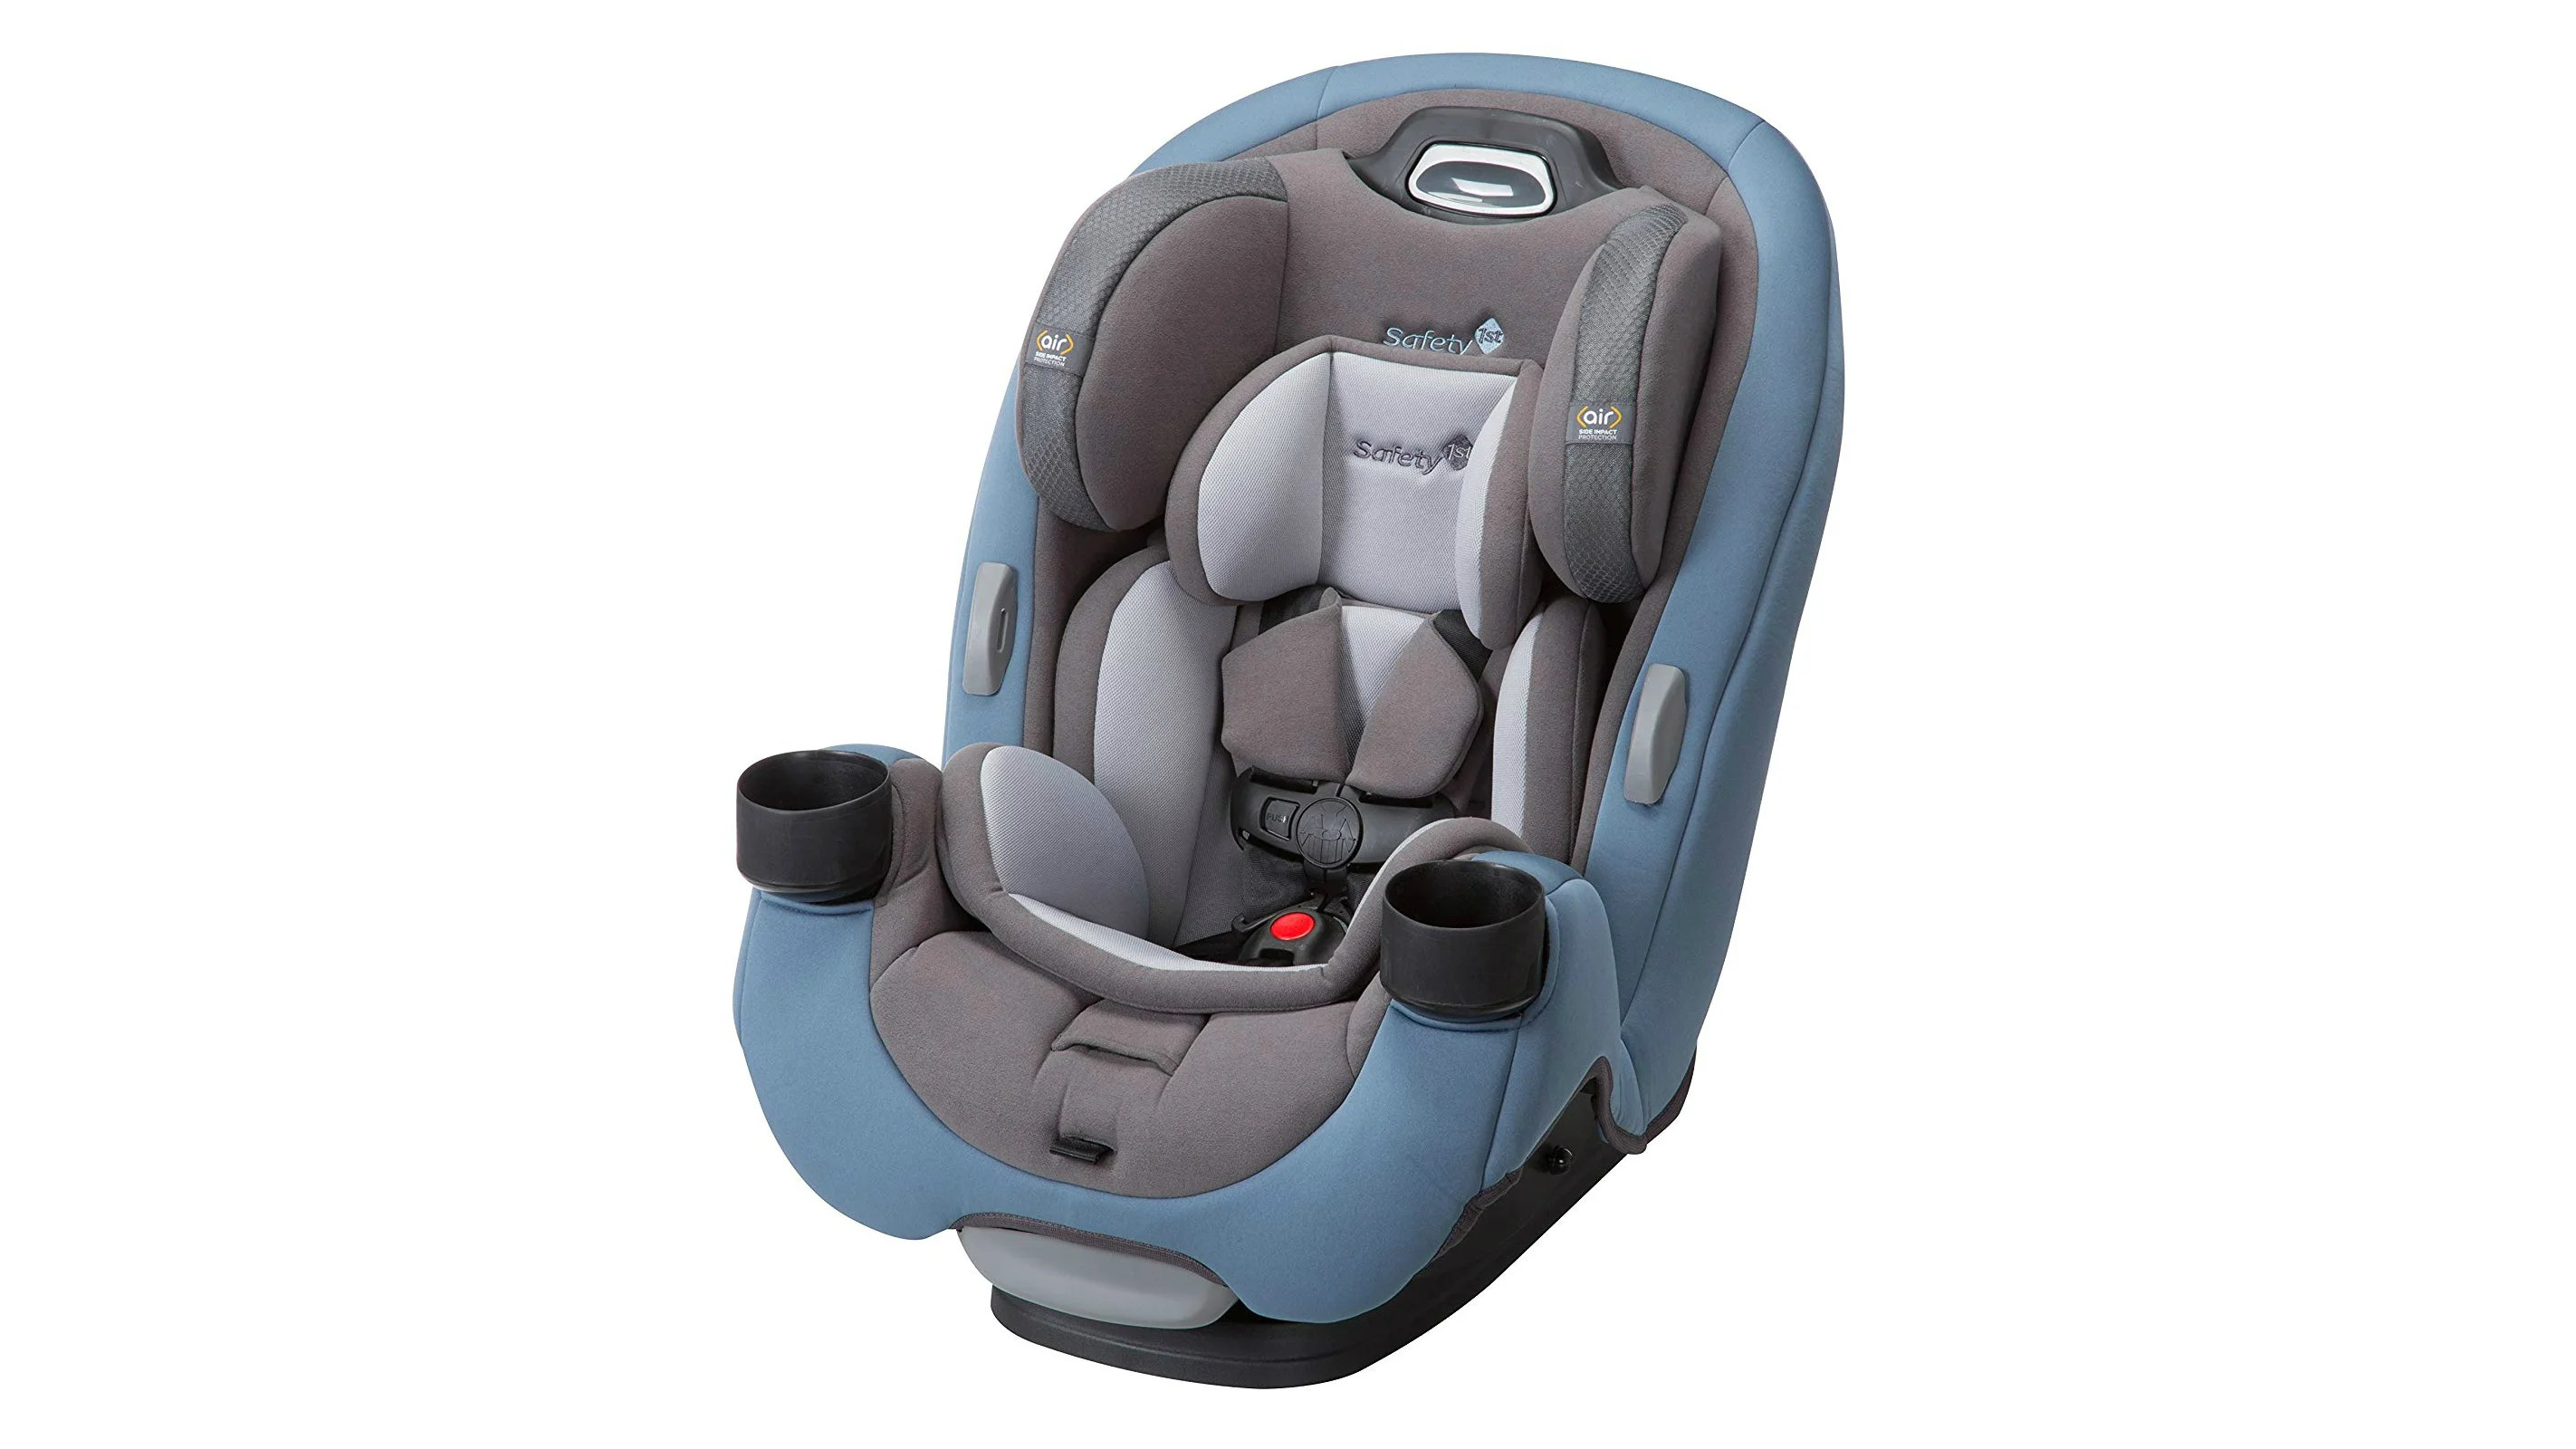 Rear Facing Car Seat More Legroom Best Car Seats Us 2019 The Best Infant Convertible And 3